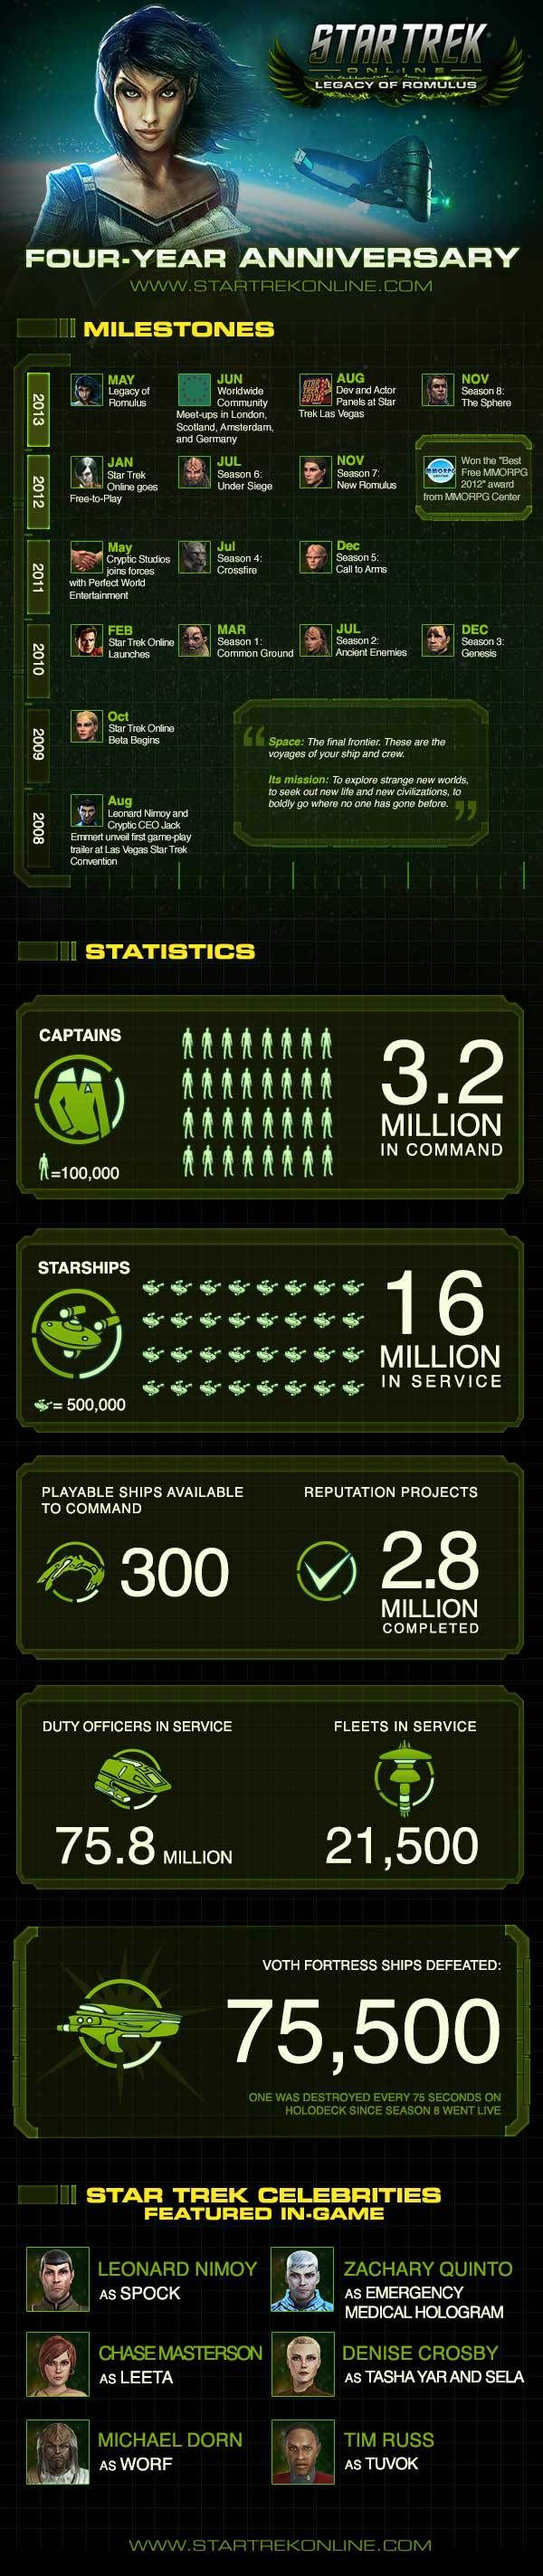 Star Trek Online MMO Celebrates 4th Anniversary With Infographic And Recap Video http://gg3.be/2014/02/01/star-trek-online-mmo-celebrates-4th-anniversary-with-infographic-and-recap-video/